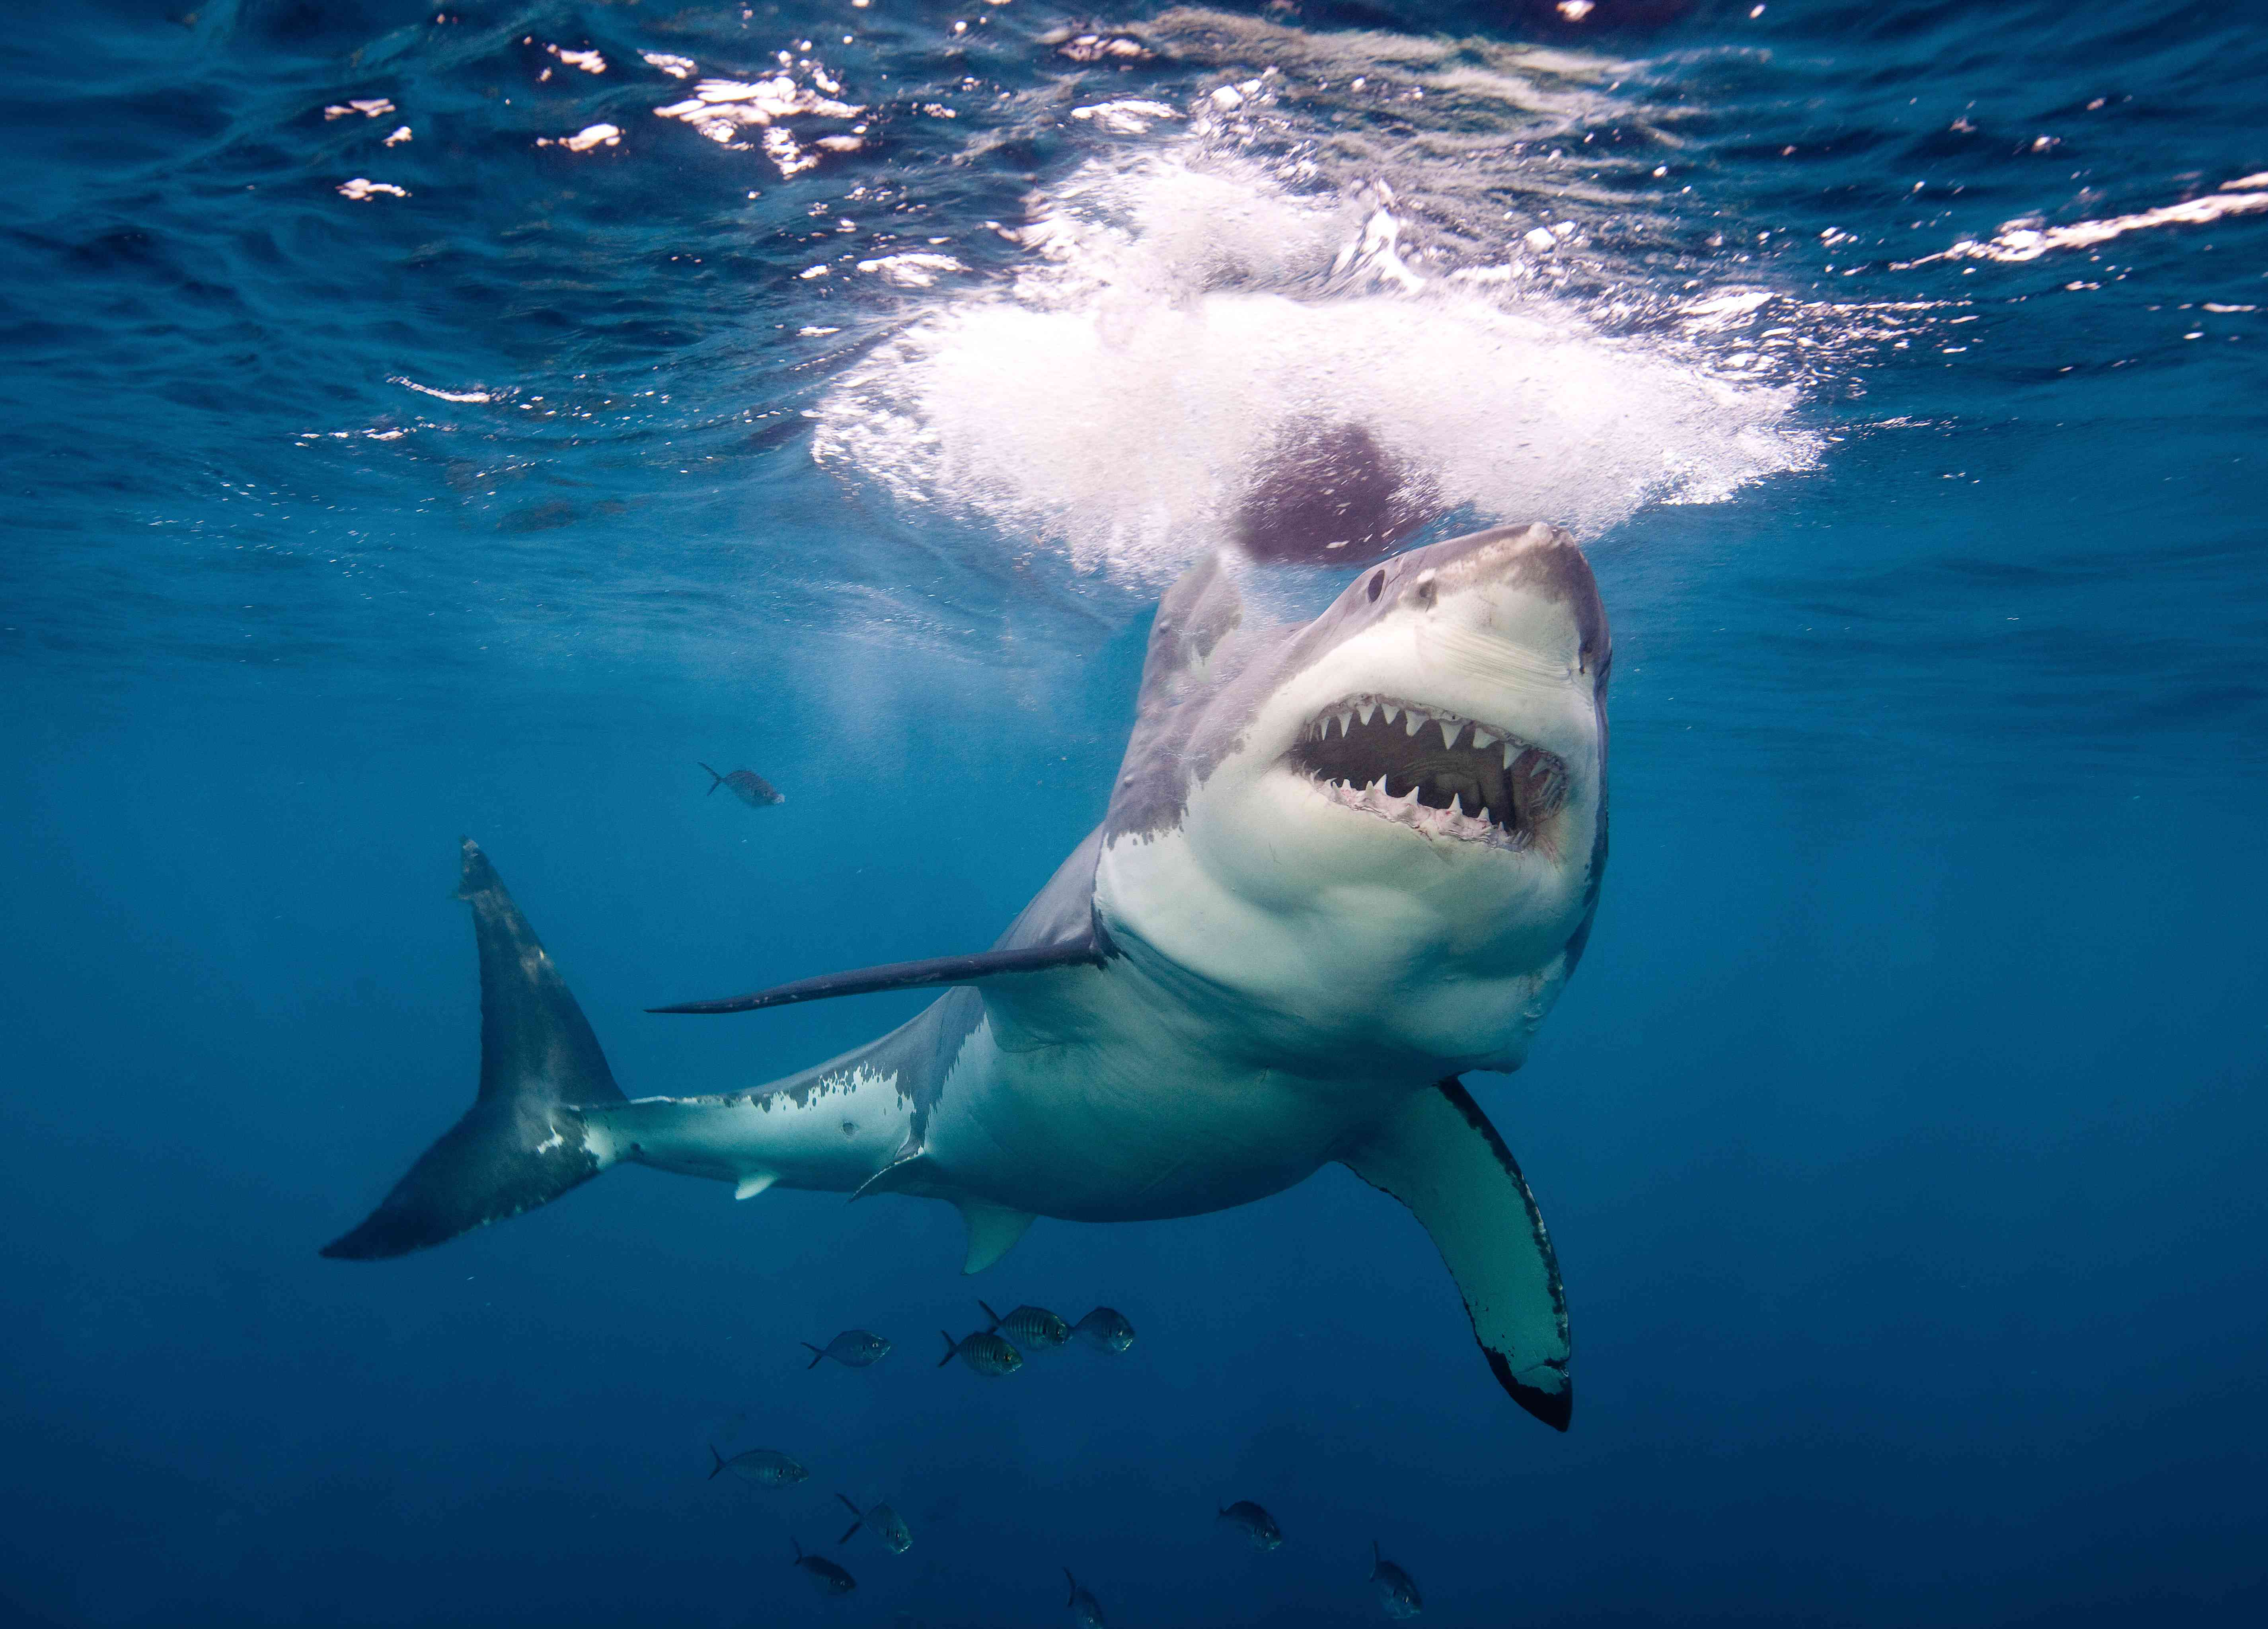 A great white shark with open mouth swims up toward prey near the water's surface.